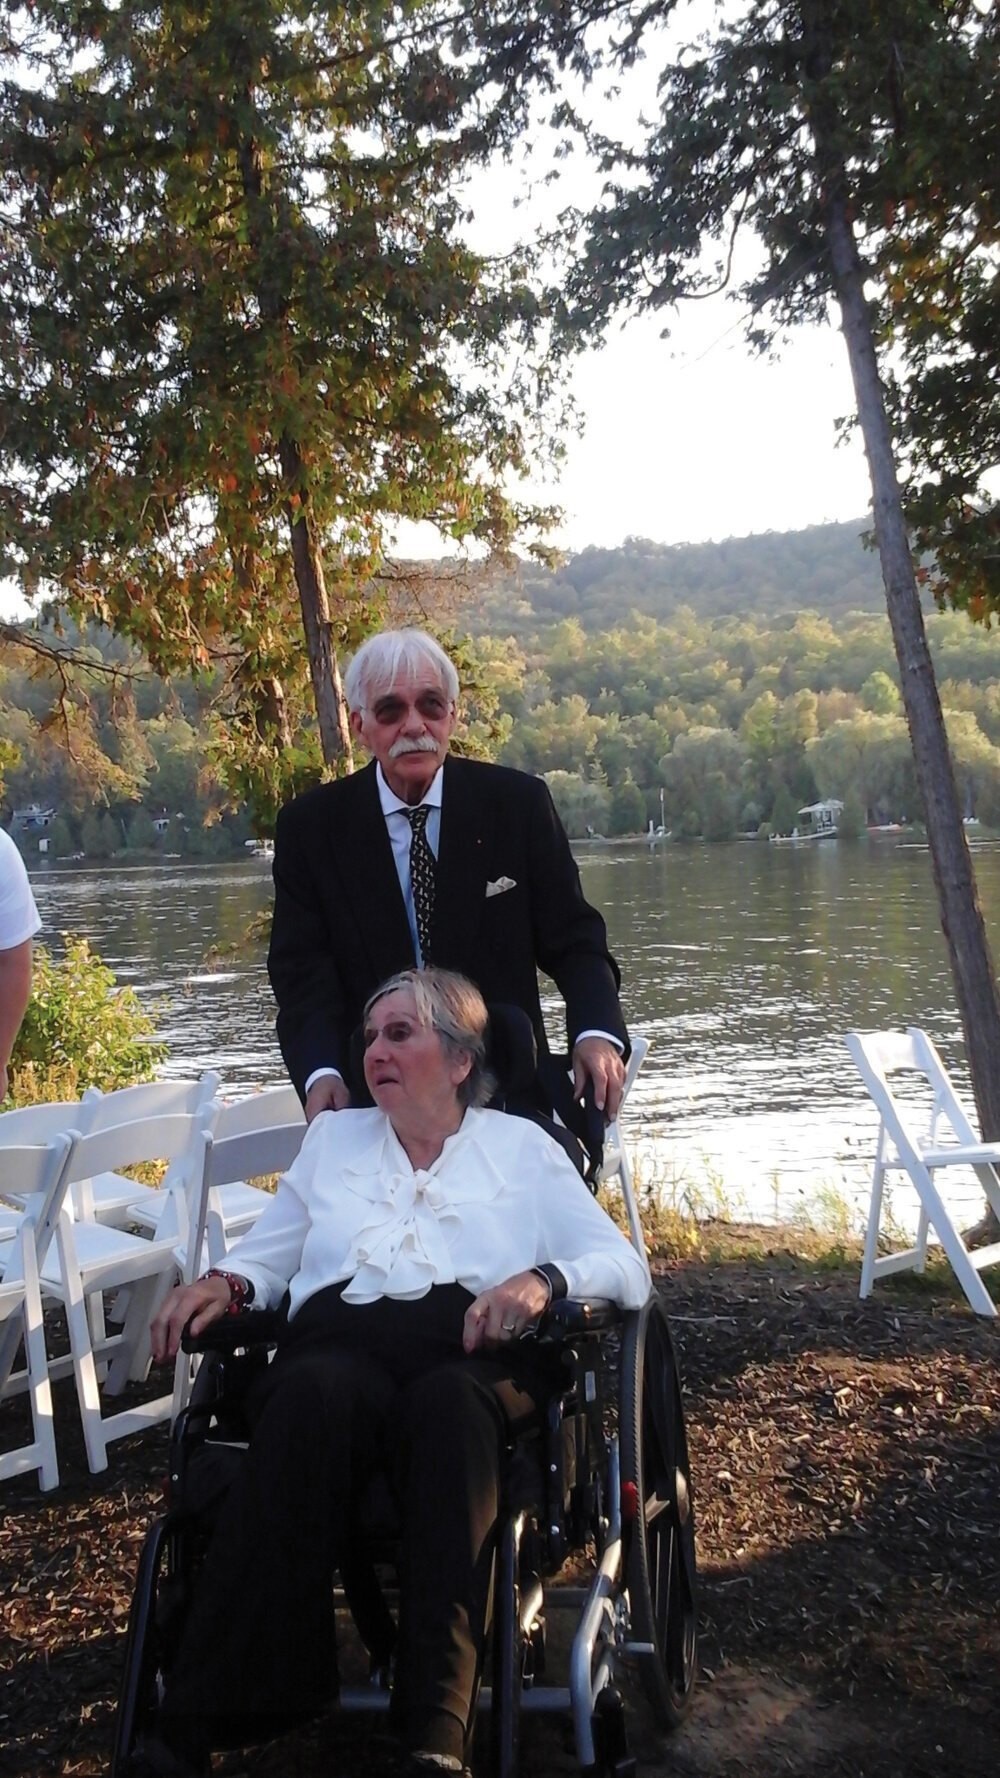 Frank and Irene Palmer at a friend's wedding in September 2017.